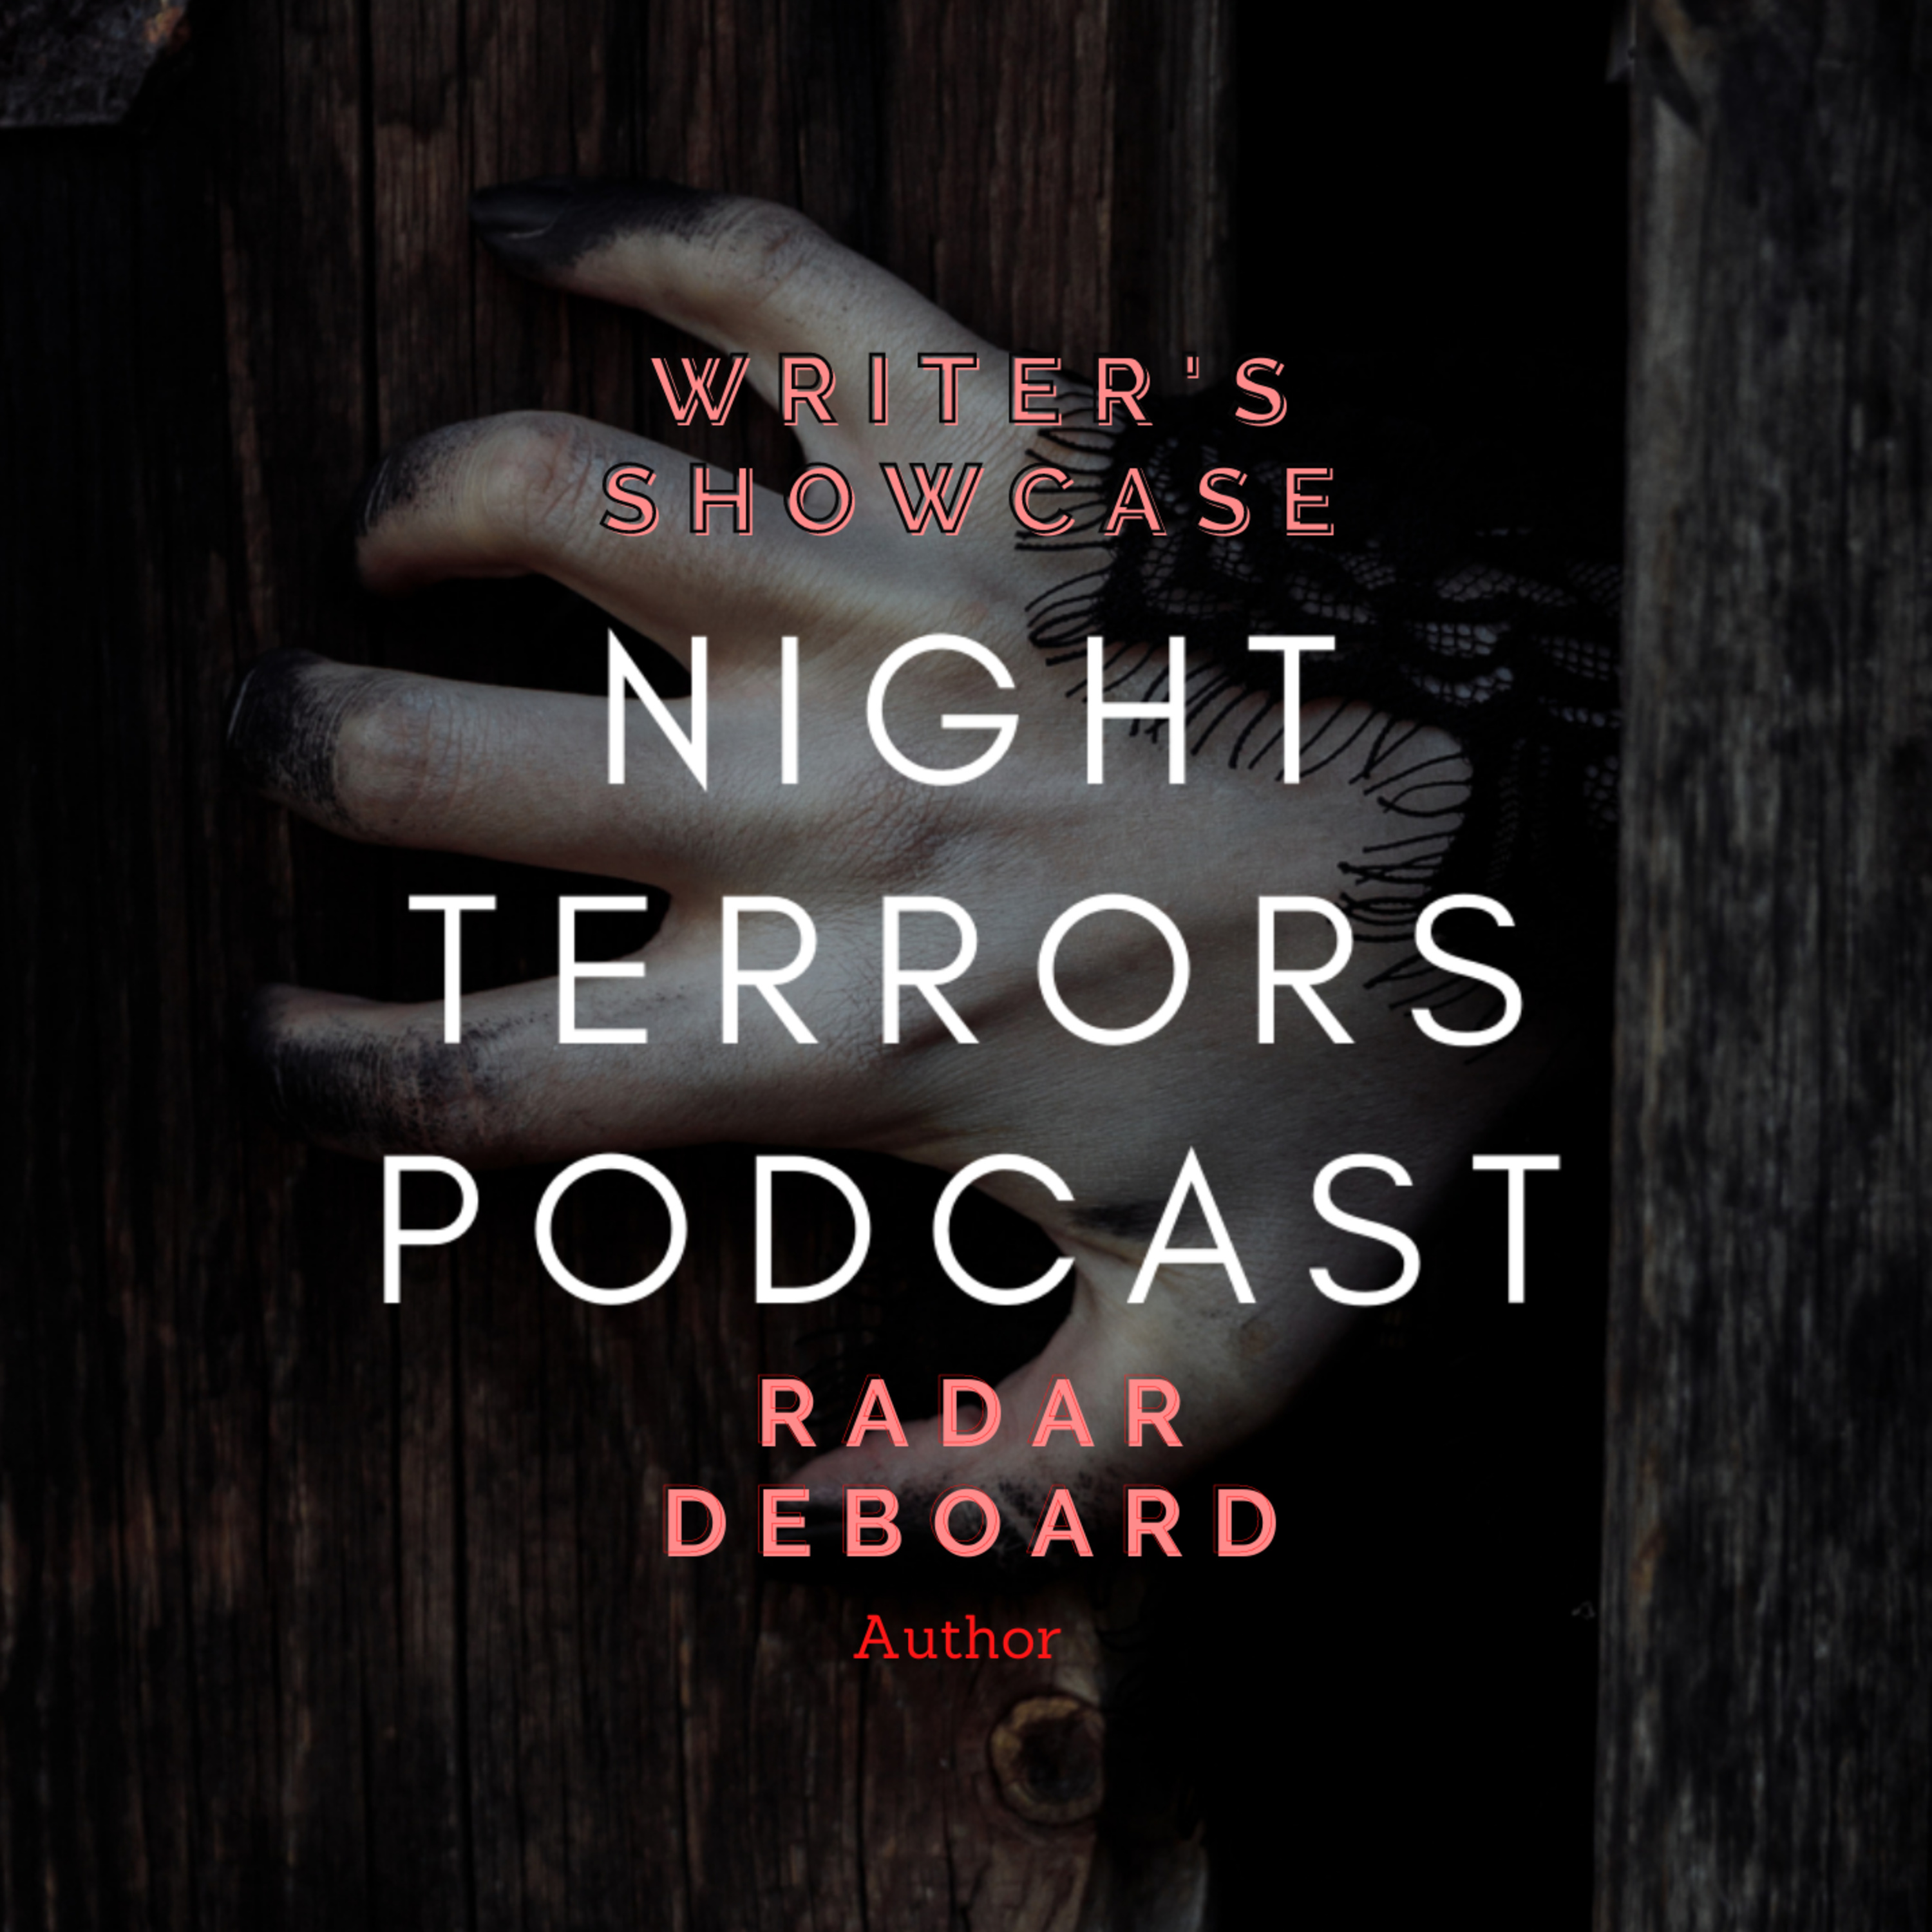 The Night Terrors Podcast